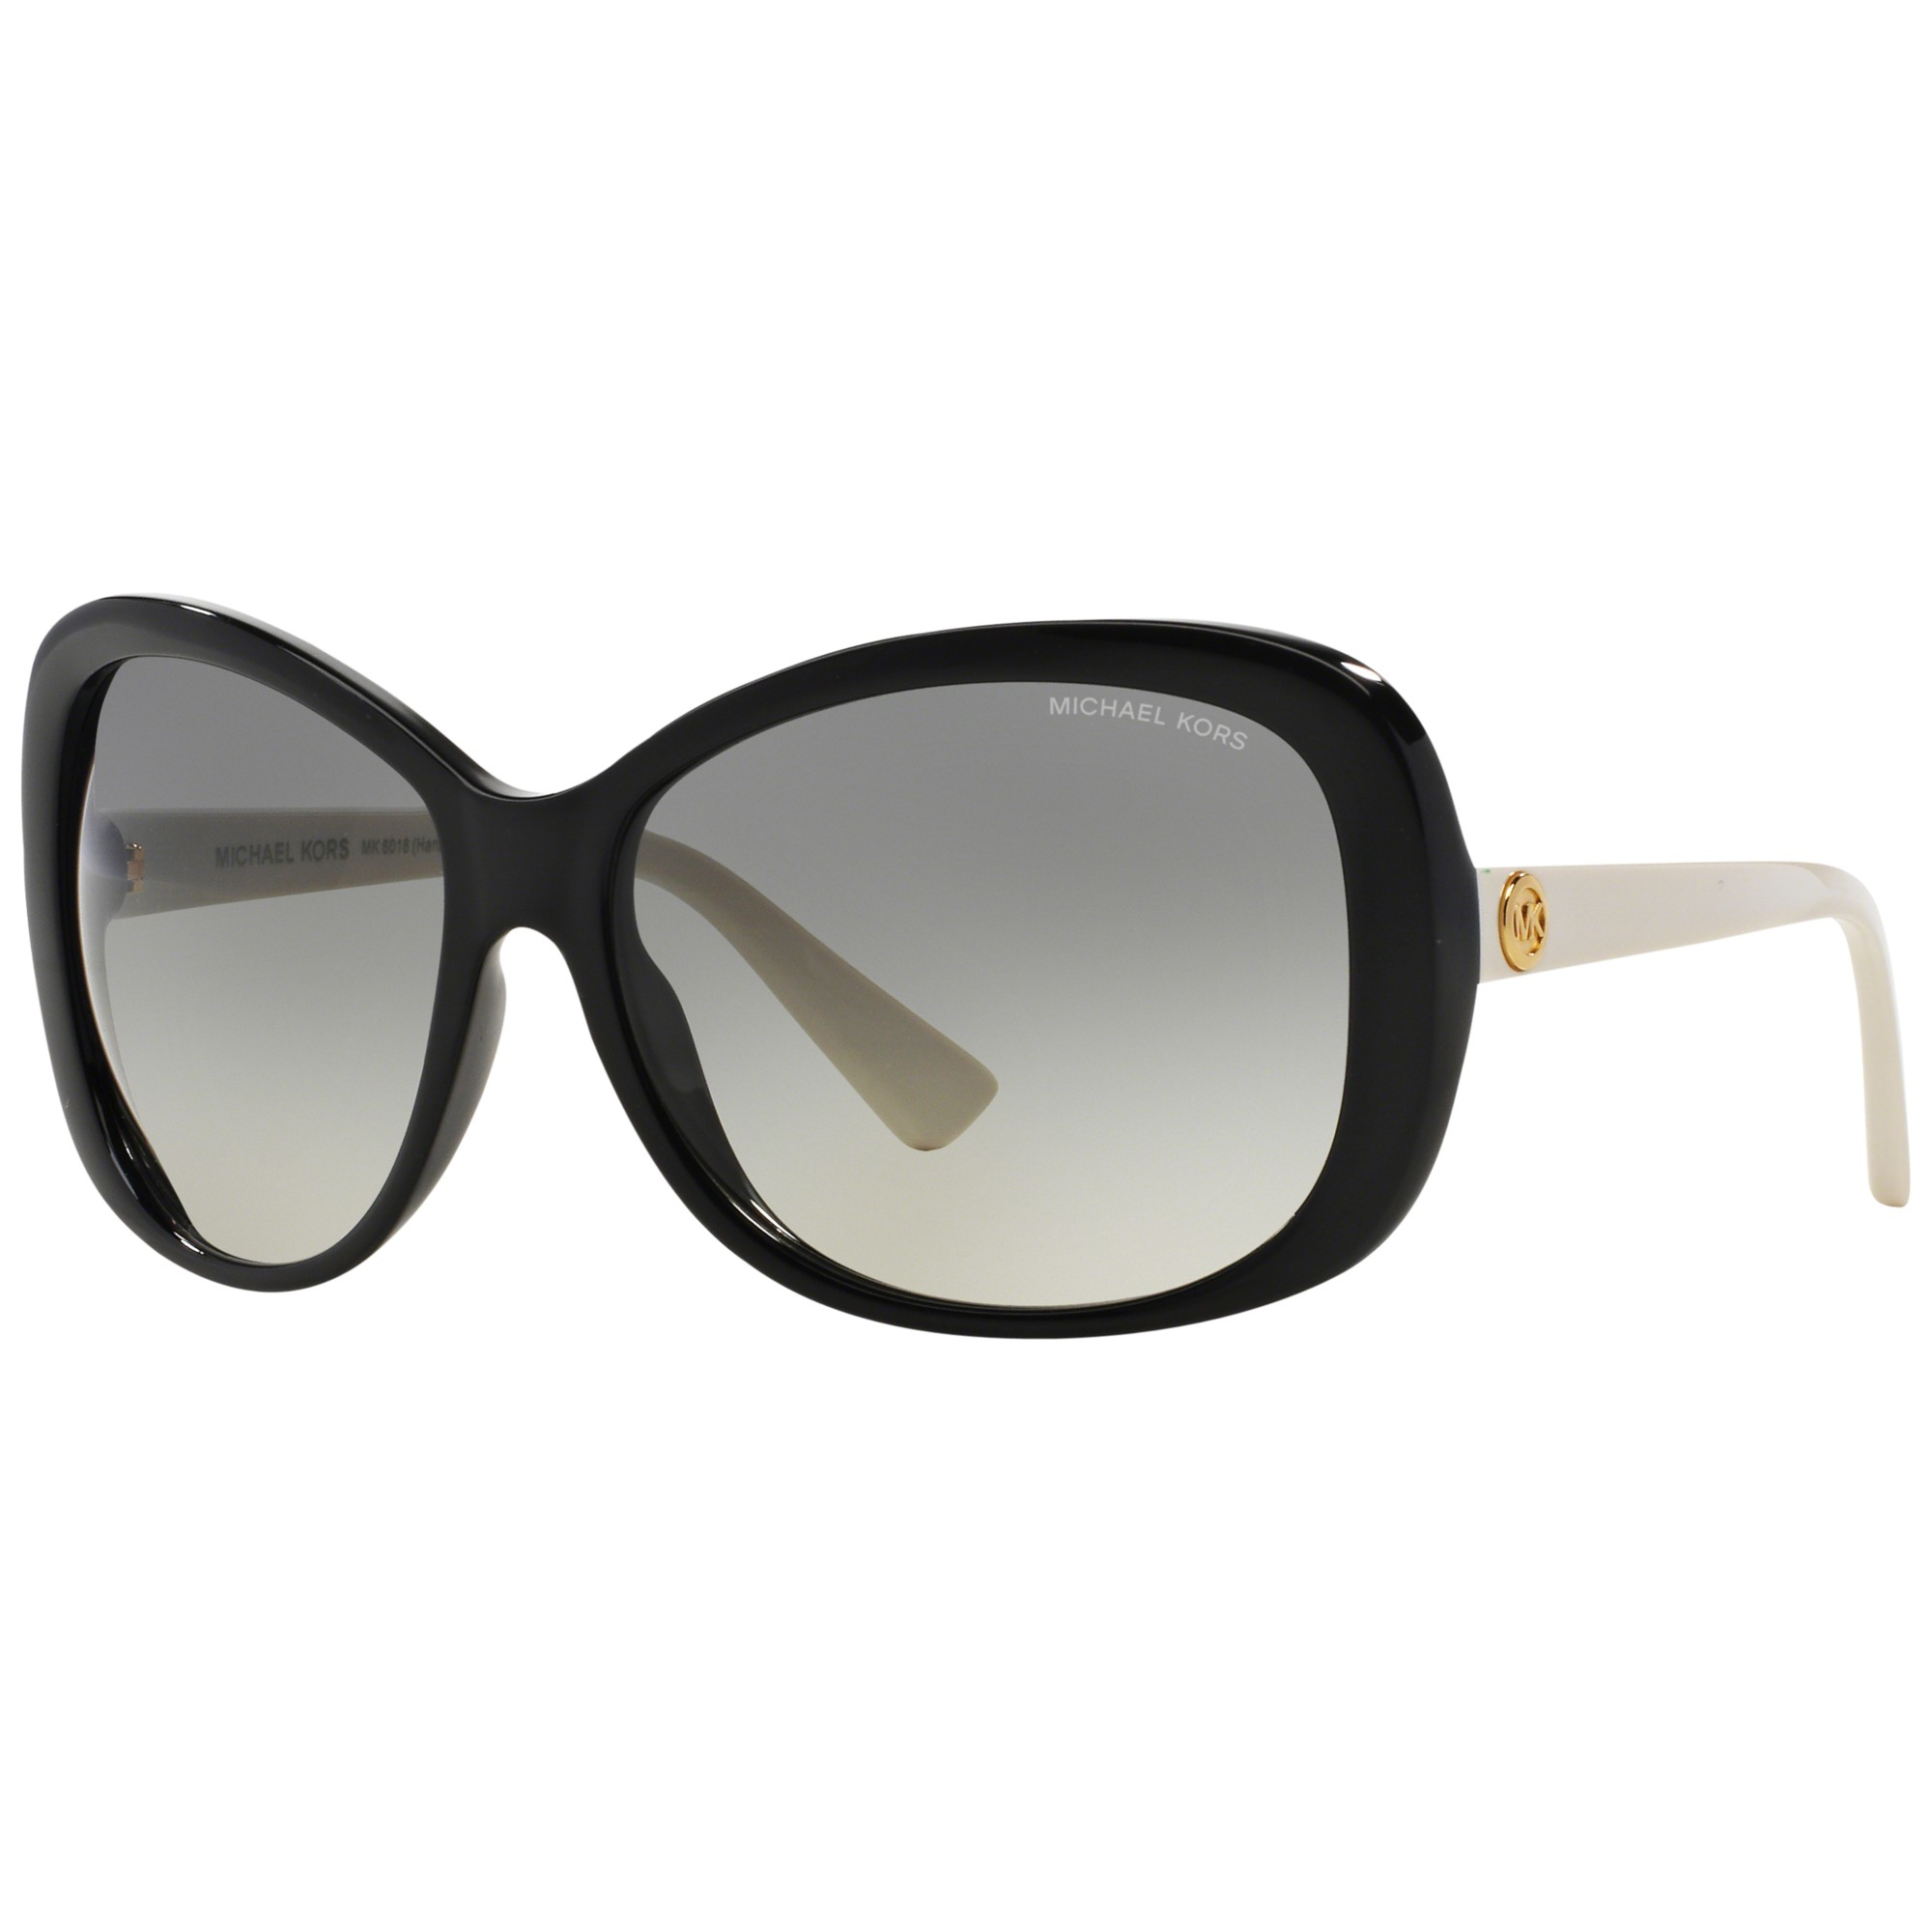 27a8e9f3f5bf9 Michael Kors Mk6018 Butterfly Framed Sunglasses in Black - Lyst